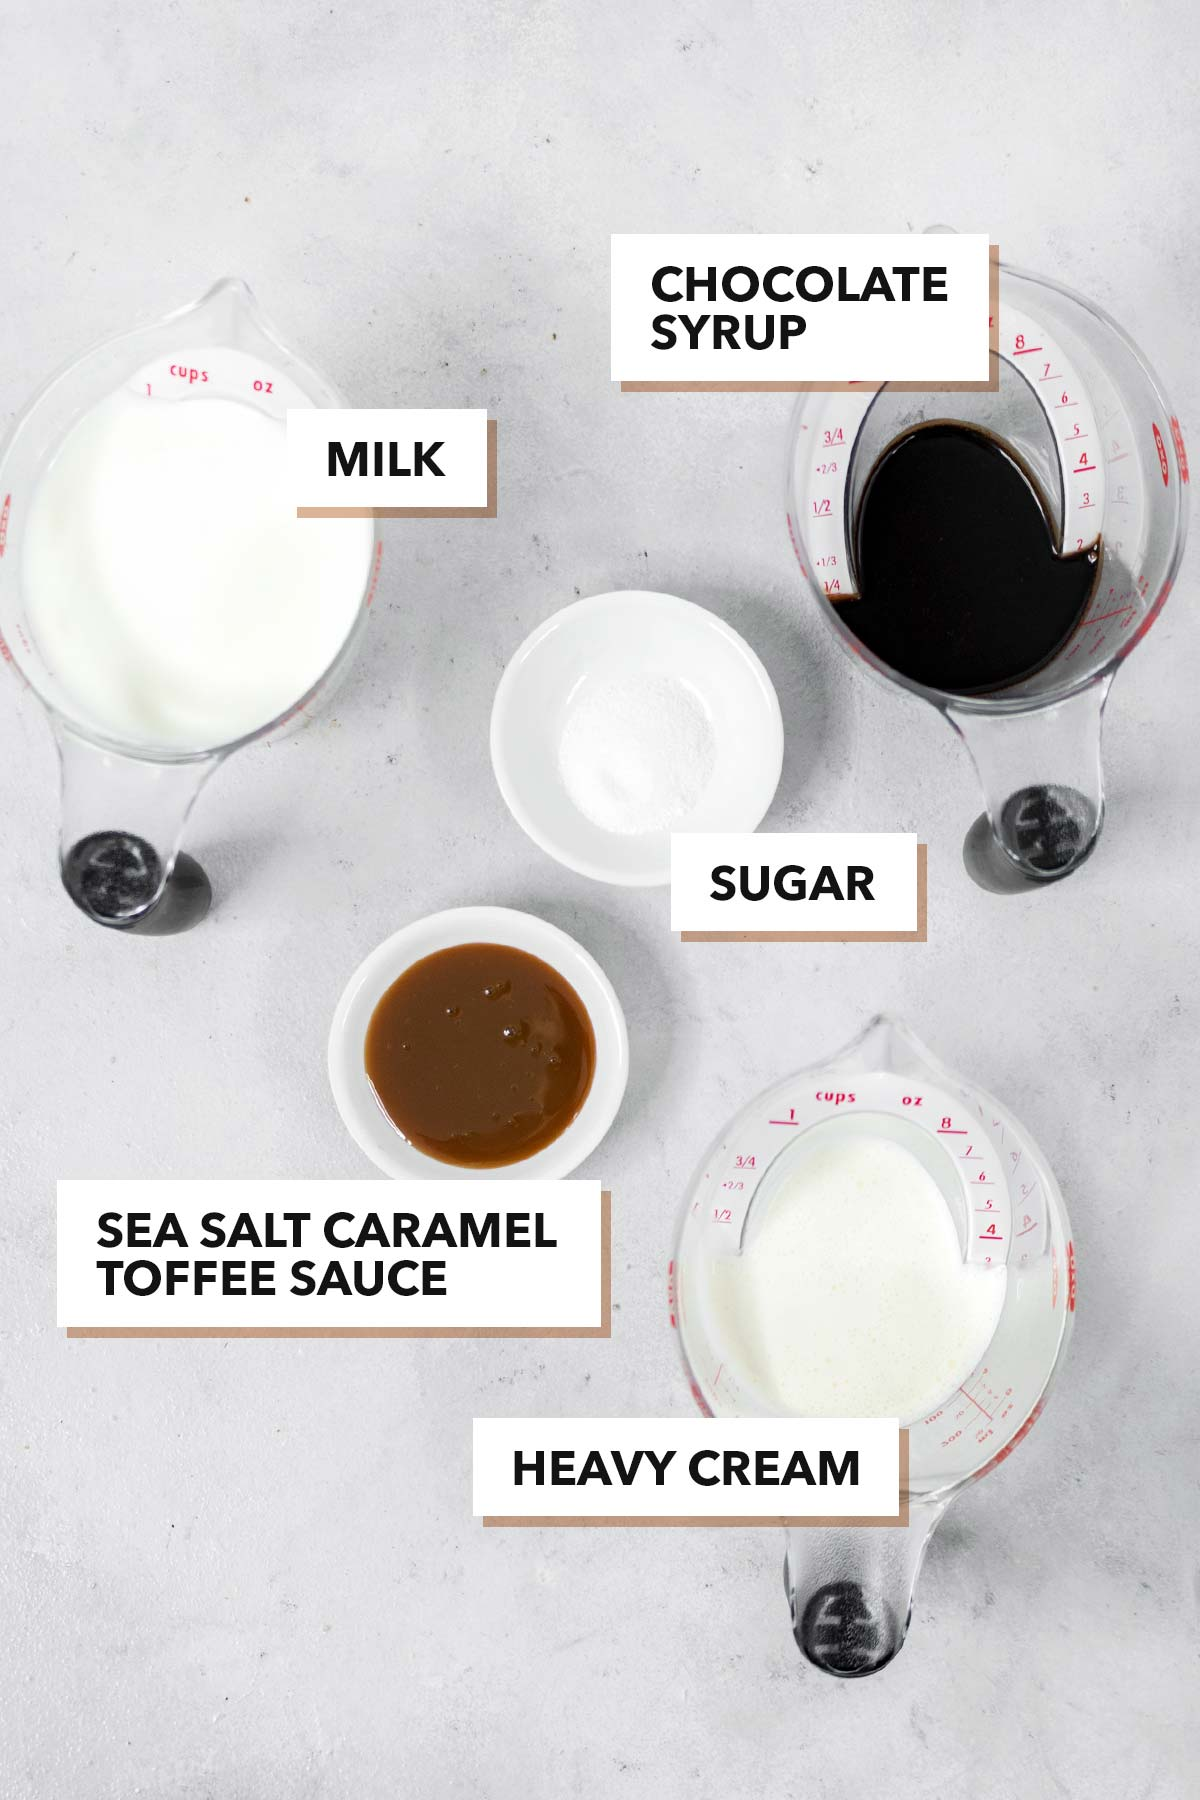 Salted caramel hot chocolate Ingredients.